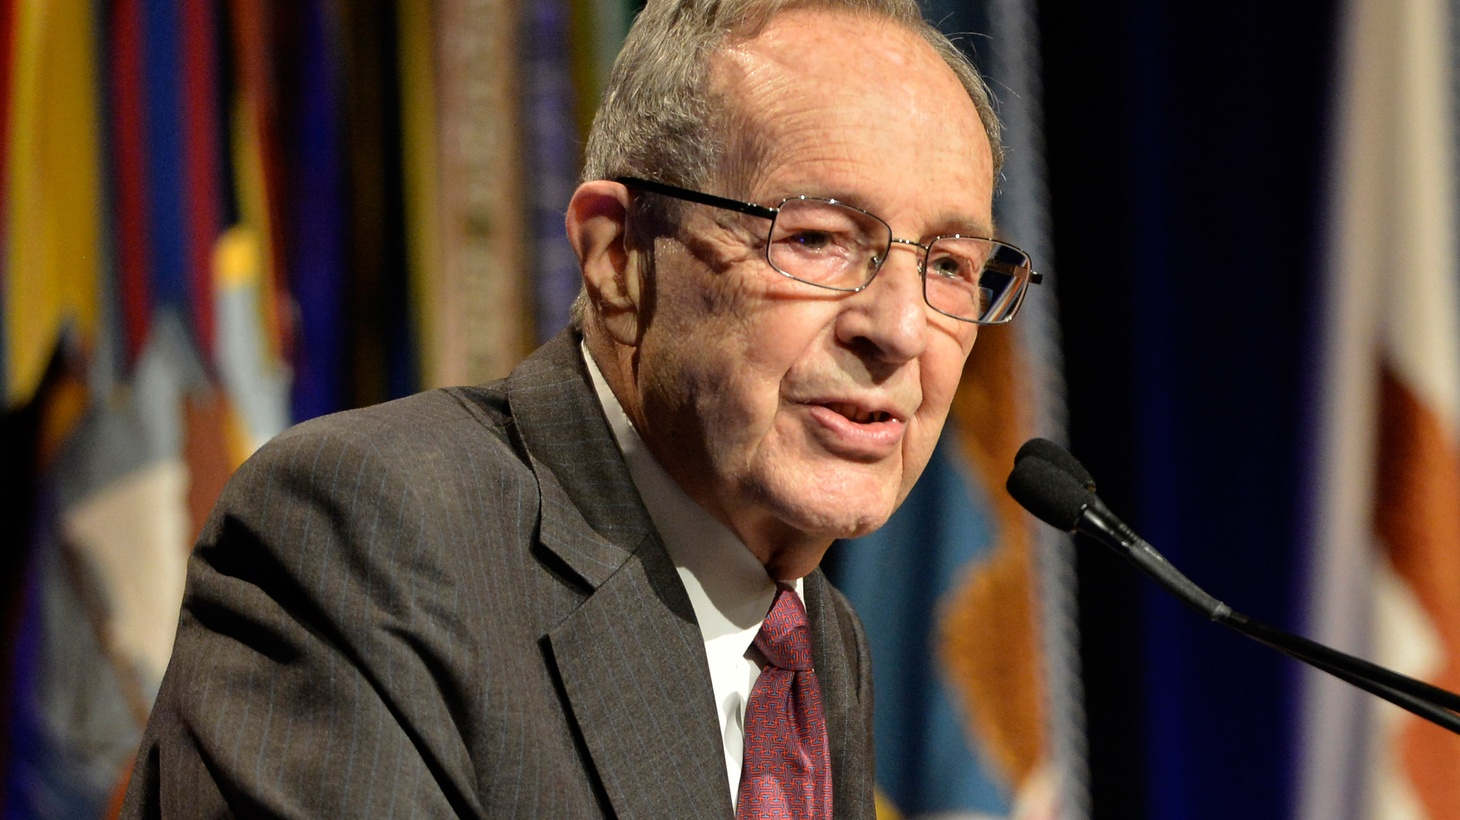 The former Secretary of Defense discusses the current nuclear threats the world faces and how we got to this point.